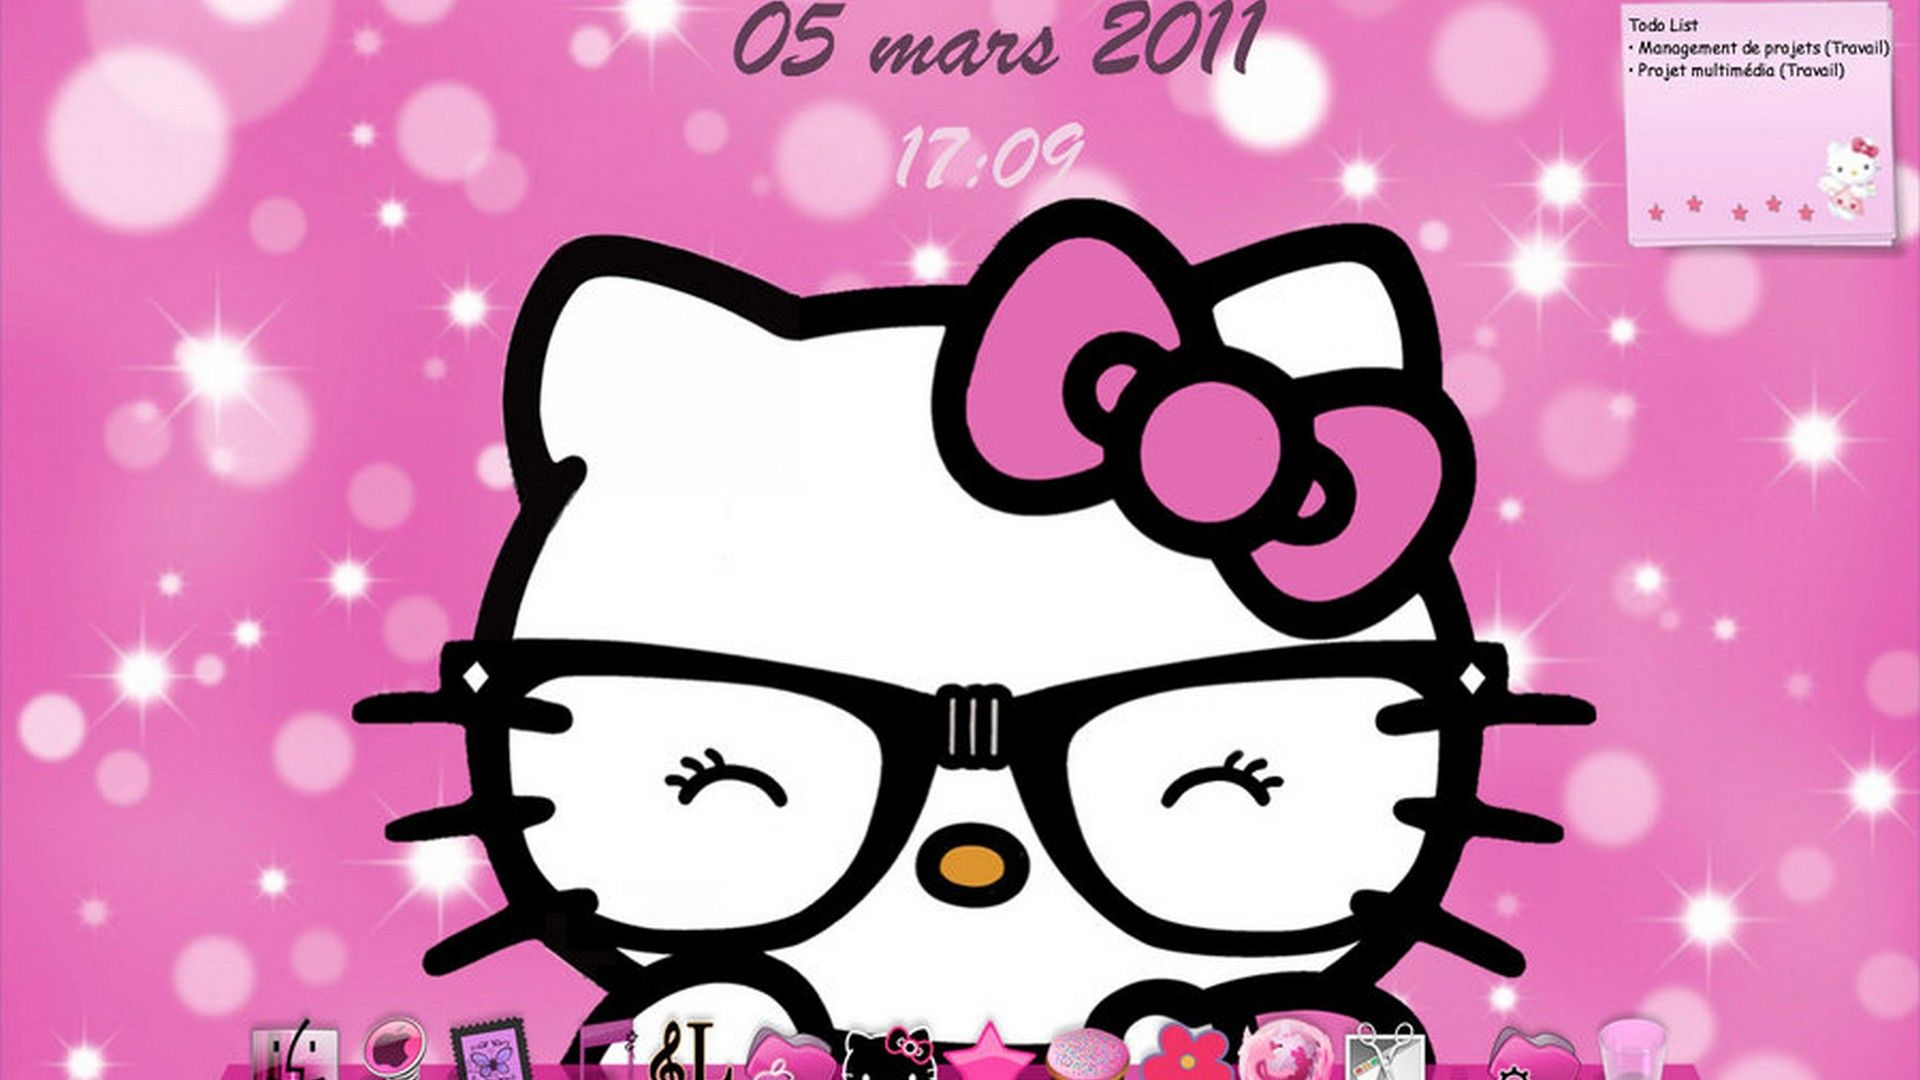 Hello Kitty Wallpaper For Desktop Best Hd Wallpapers Hello Kitty Wallpaper Hello Kitty Wallpaper Hd Pink Wallpaper Hello Kitty